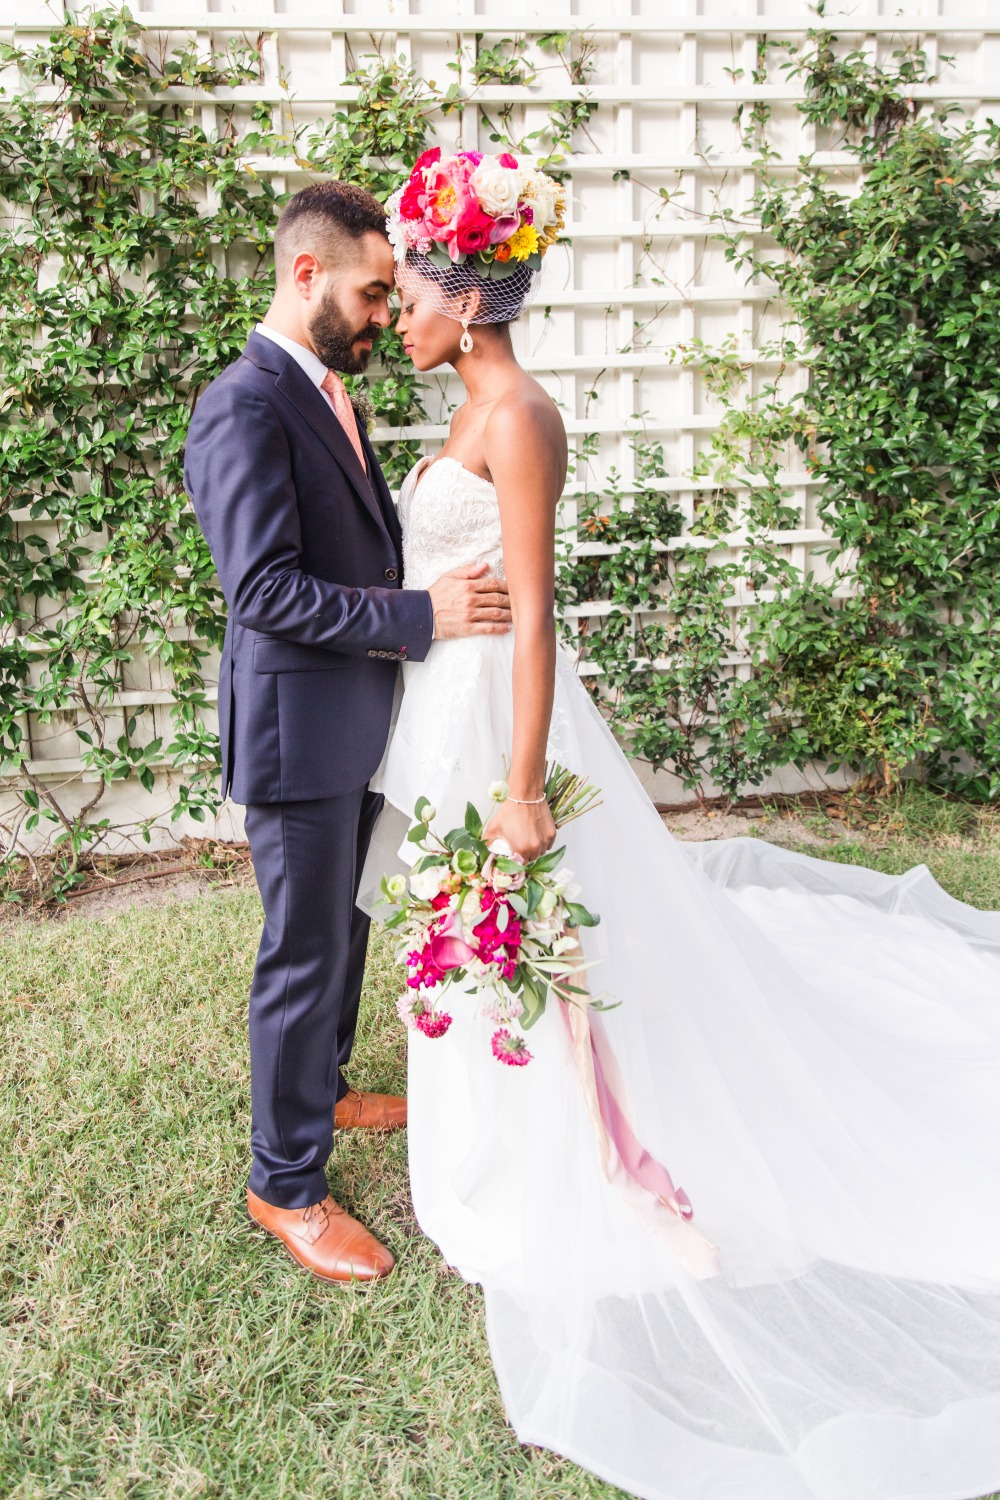 How To Have A Bright And Funky Wedding This Summer